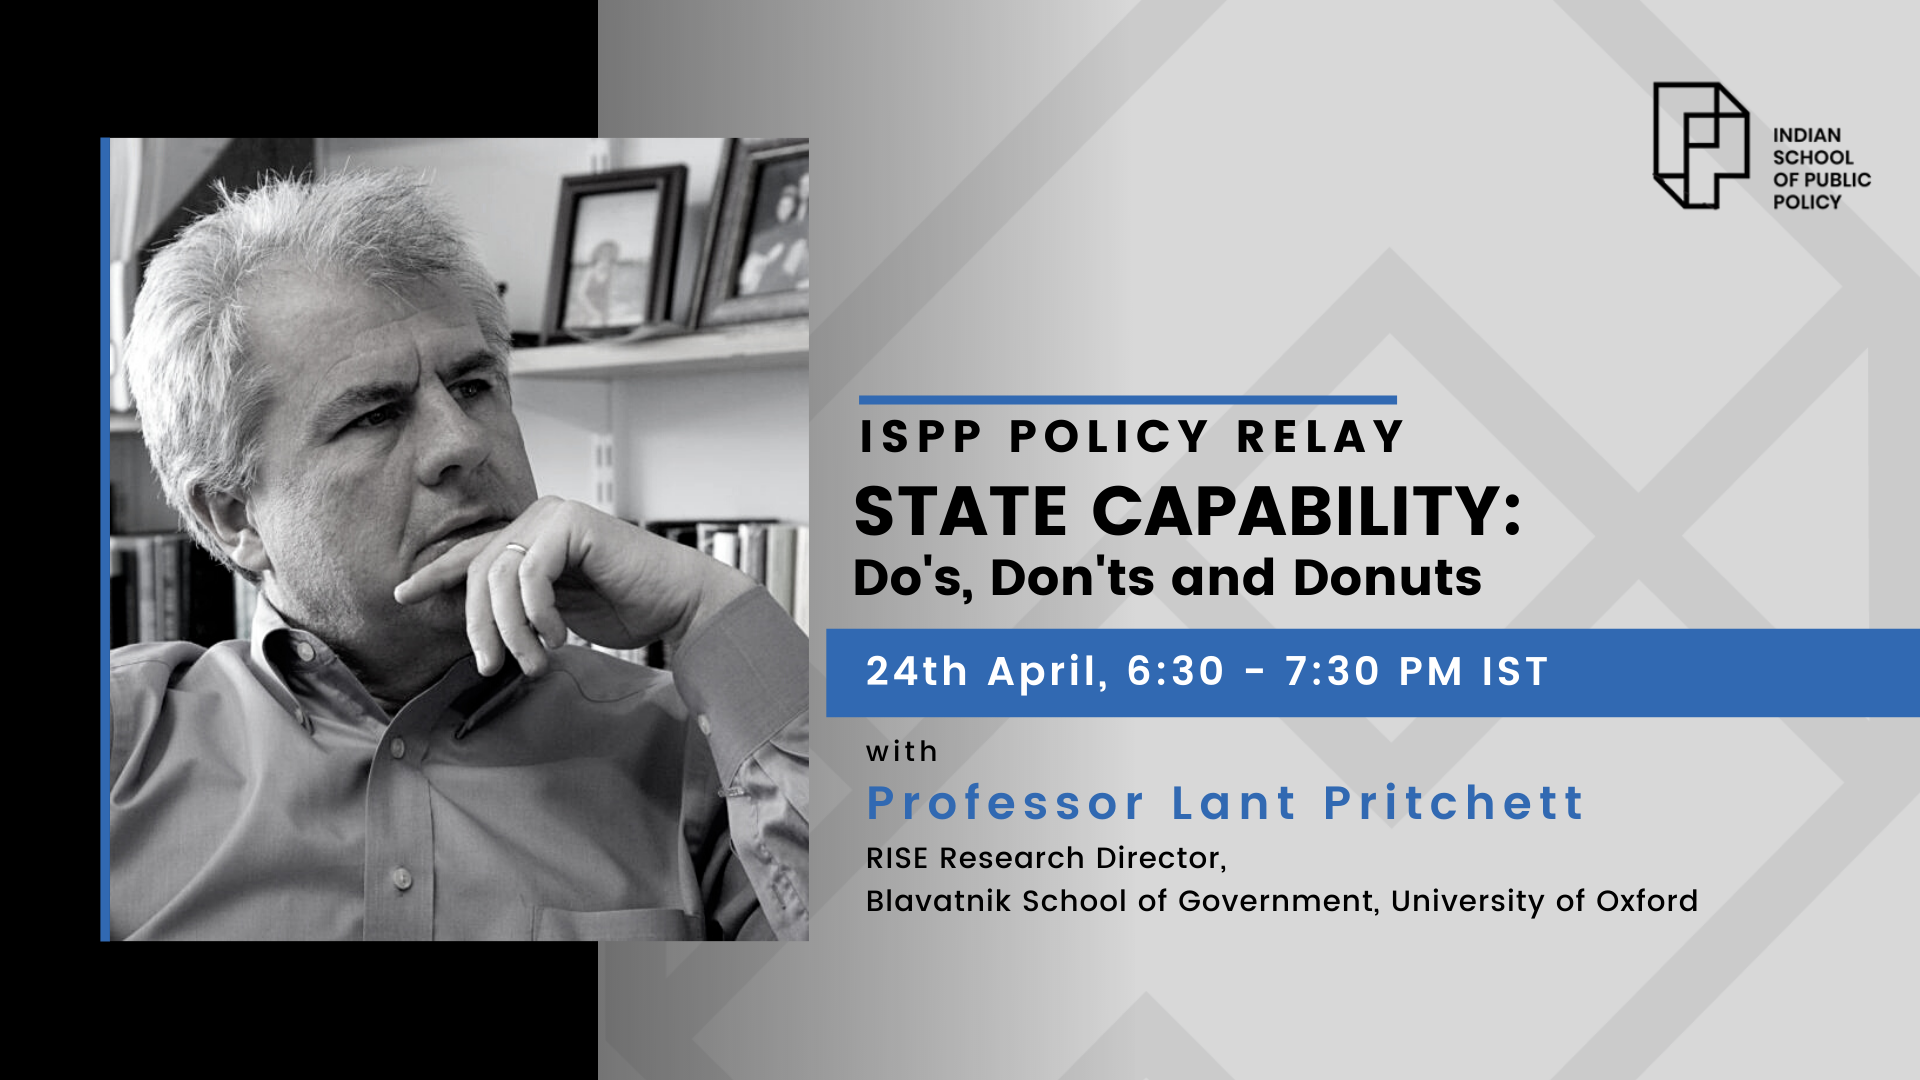 ISPP Policy Relay | State Capability: Do's, Do Not's and Donuts